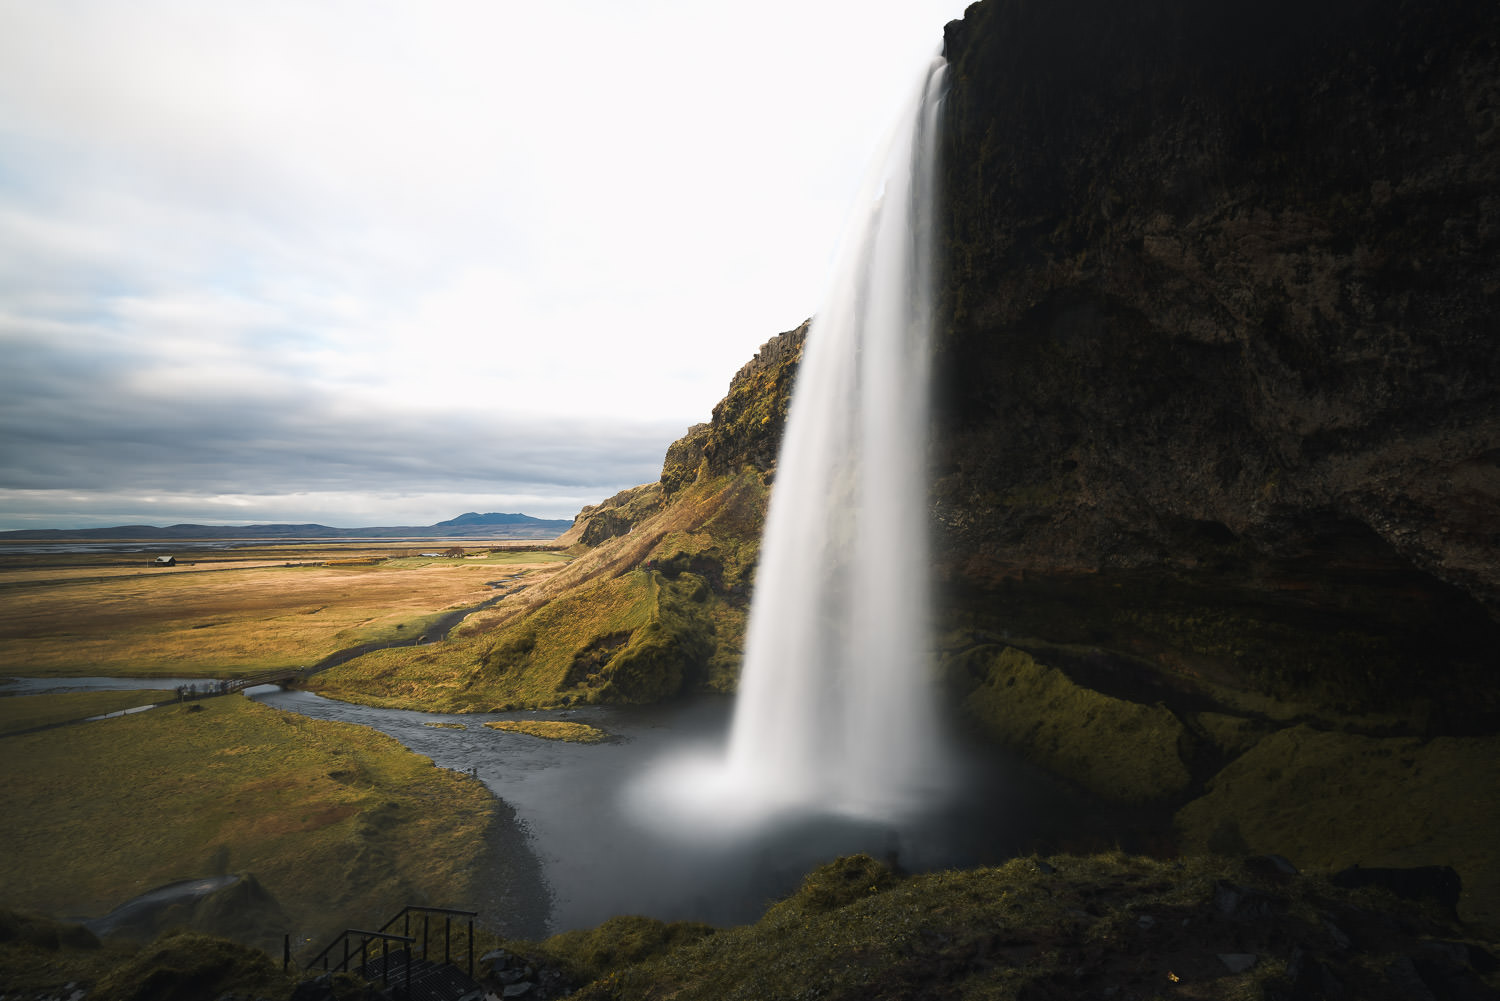 Seljalandsfoss snapped by @snapzak using perfect timing, composition, and magic to remove all the people